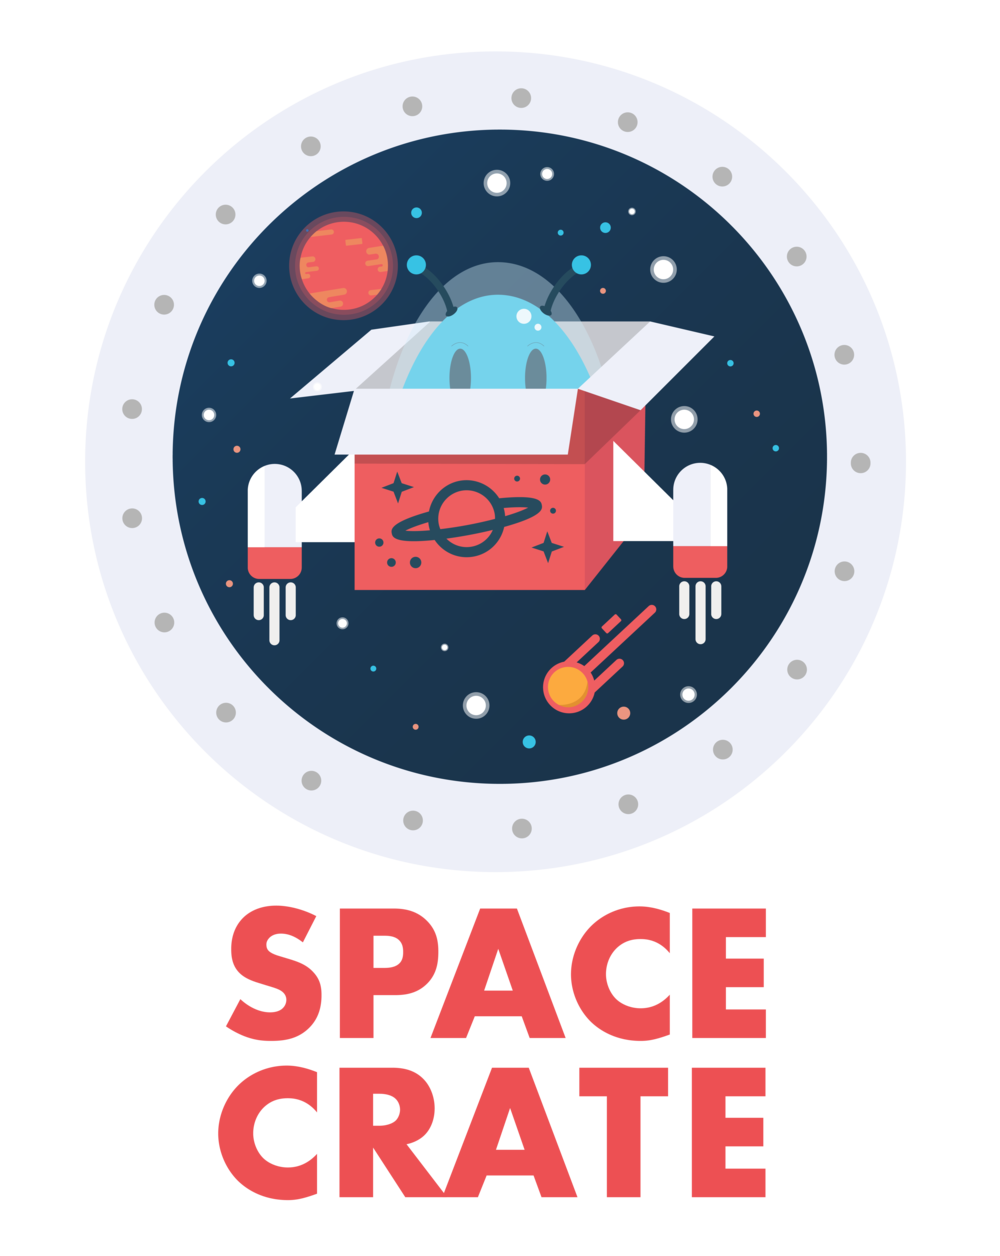 space_crate_logo-01.png